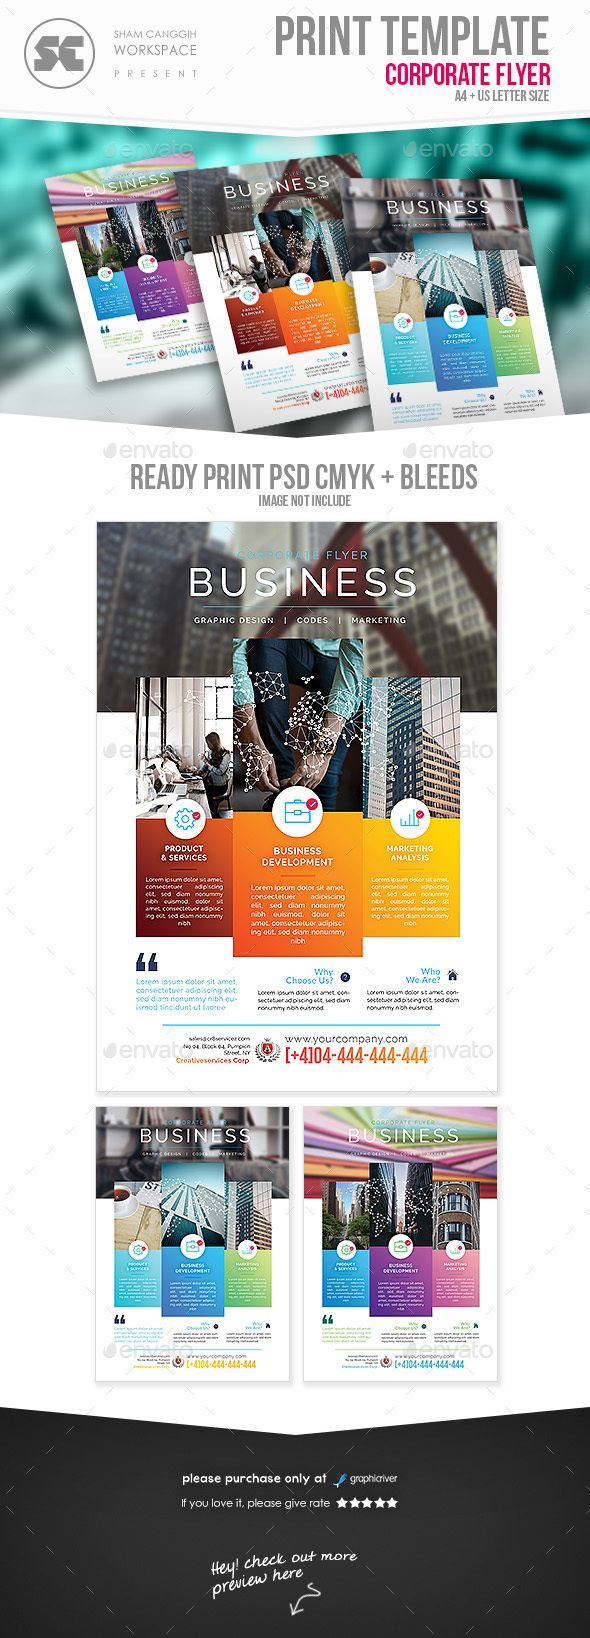 Corporate Flyer Flyer templates designed exclusively for corporate, business, agency, promotion or any of use. Fully editable, image/logo can be quickly added or replaced in smart objects. Easy to edit just find and replace image in the smart object layer, then edit the text. Flyer descriptions :      A4 size (3mm bleeds) & US Letter size (0.25inch bleeds) included     Psd Cmyk 300dpi